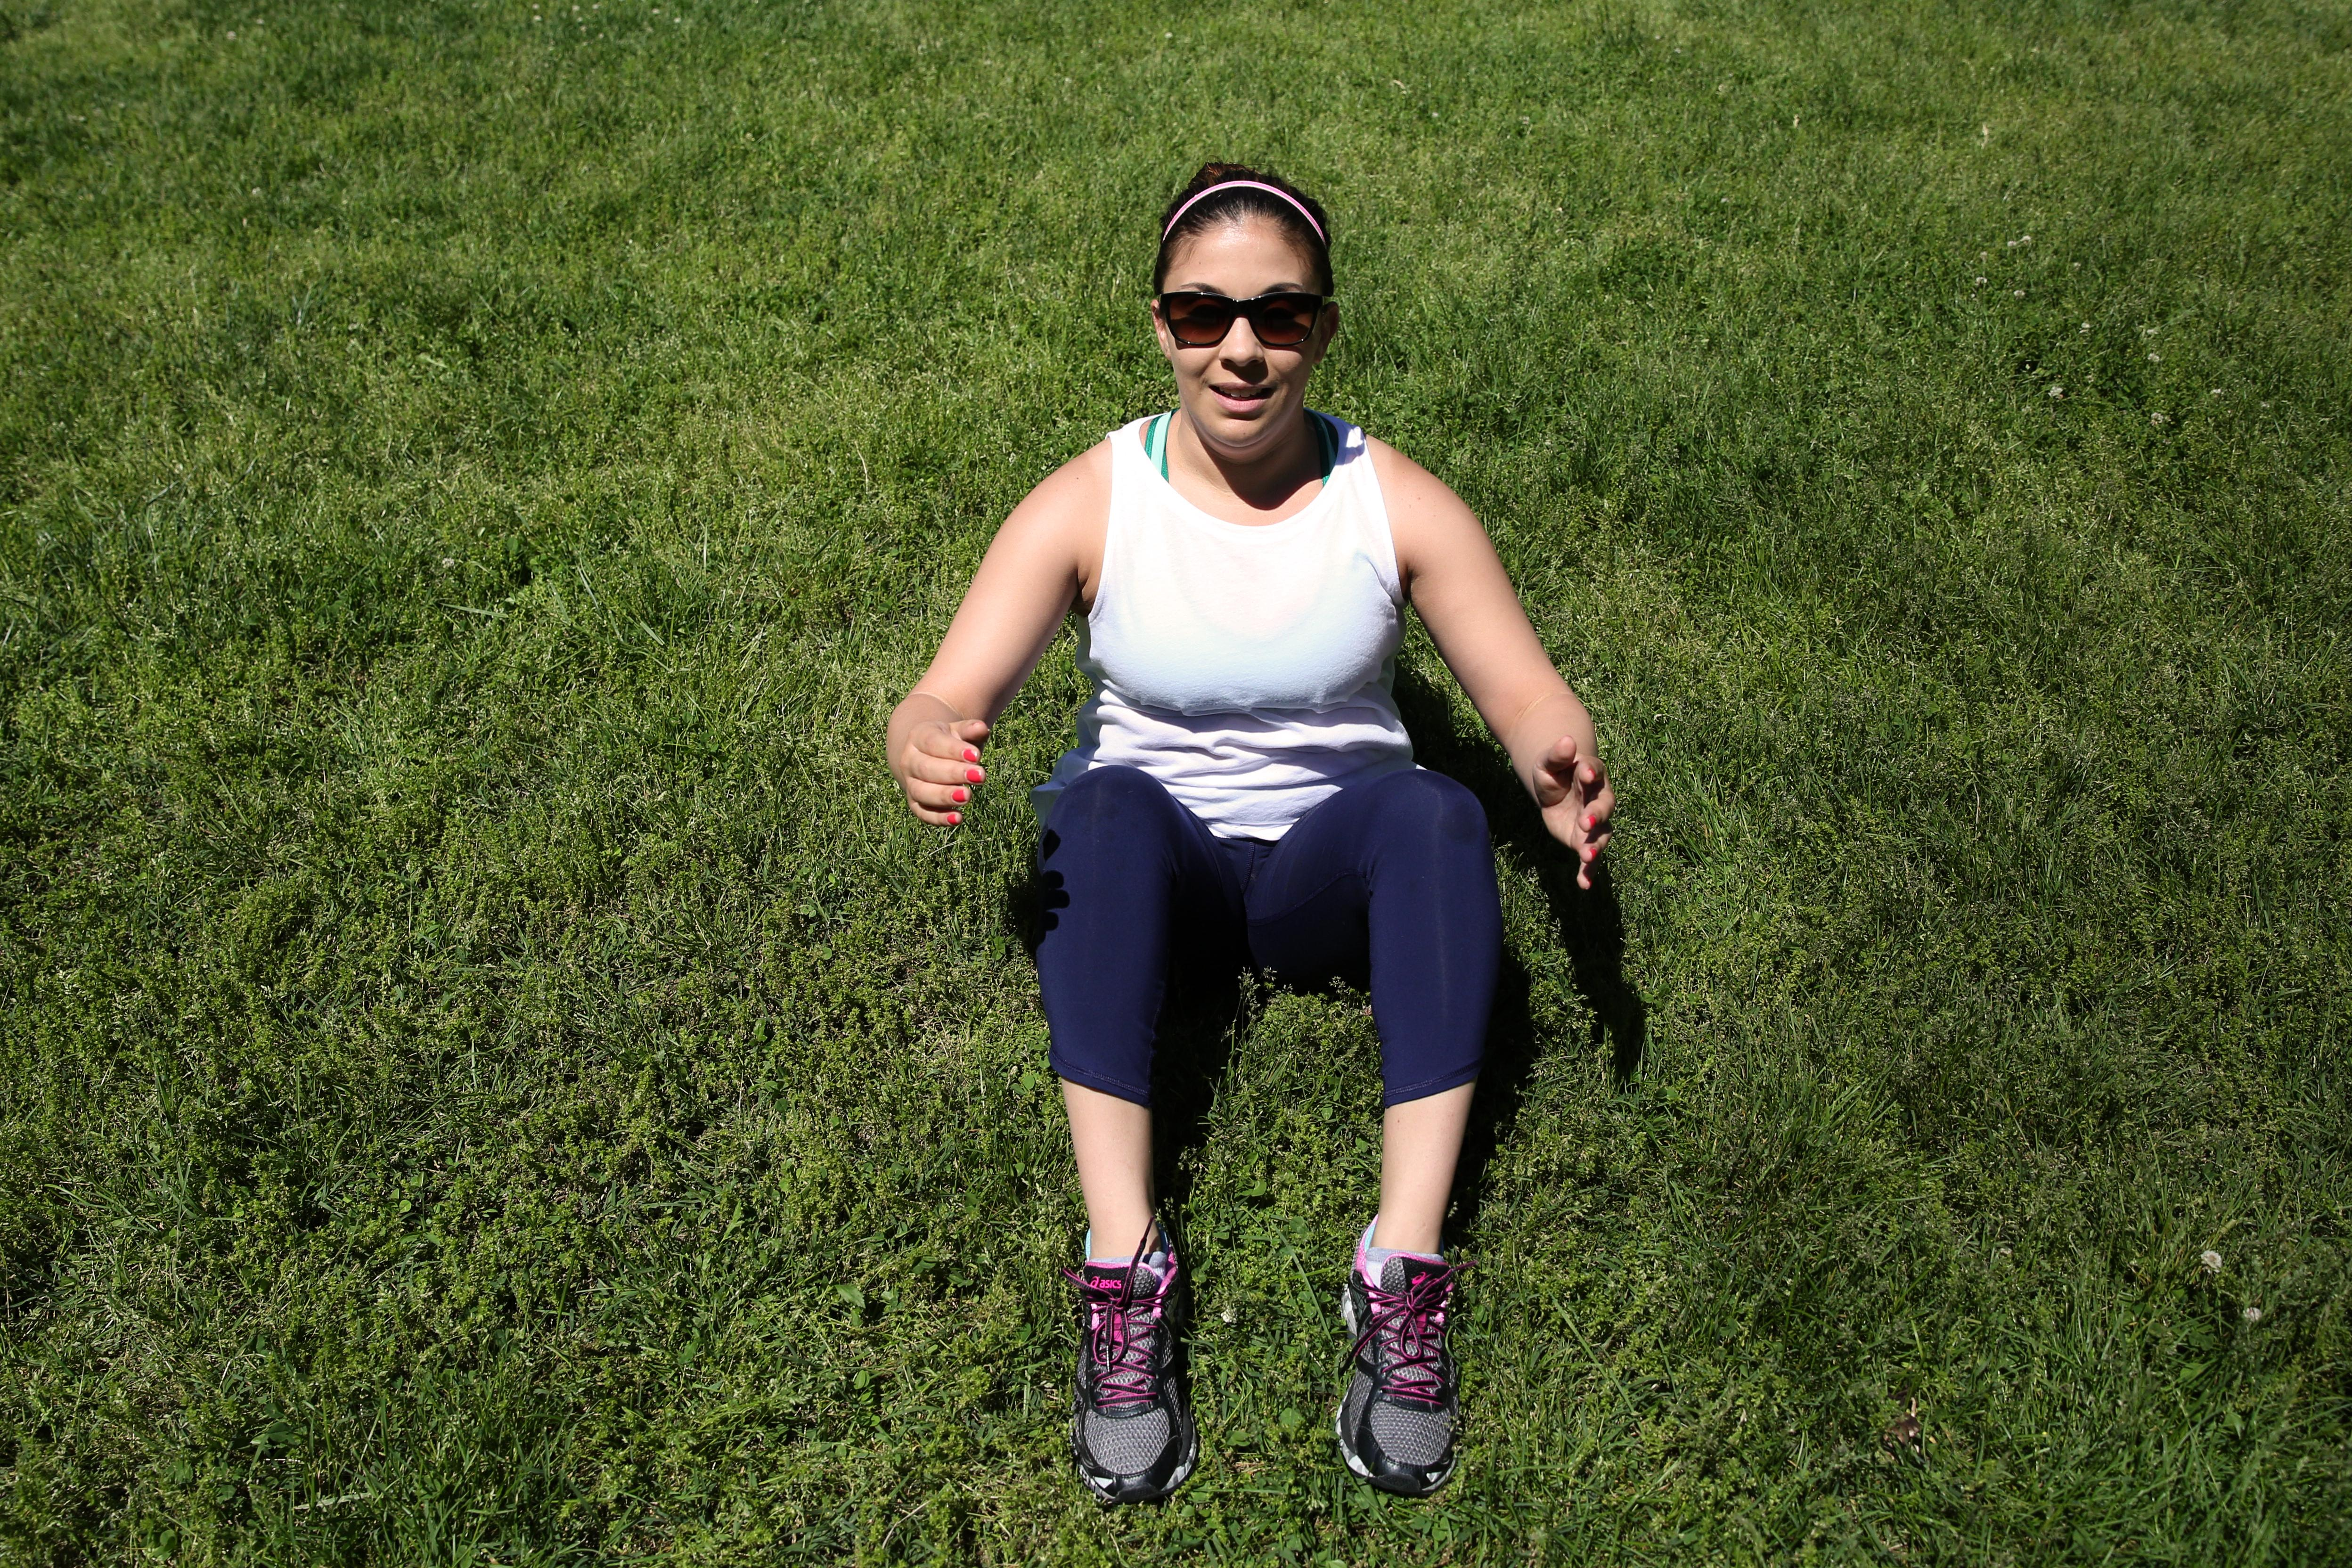 EXERCISE: Sit ups / SETS: 5 sets of 20 / (Amanda Andrade-Rhoades/DC Refined)